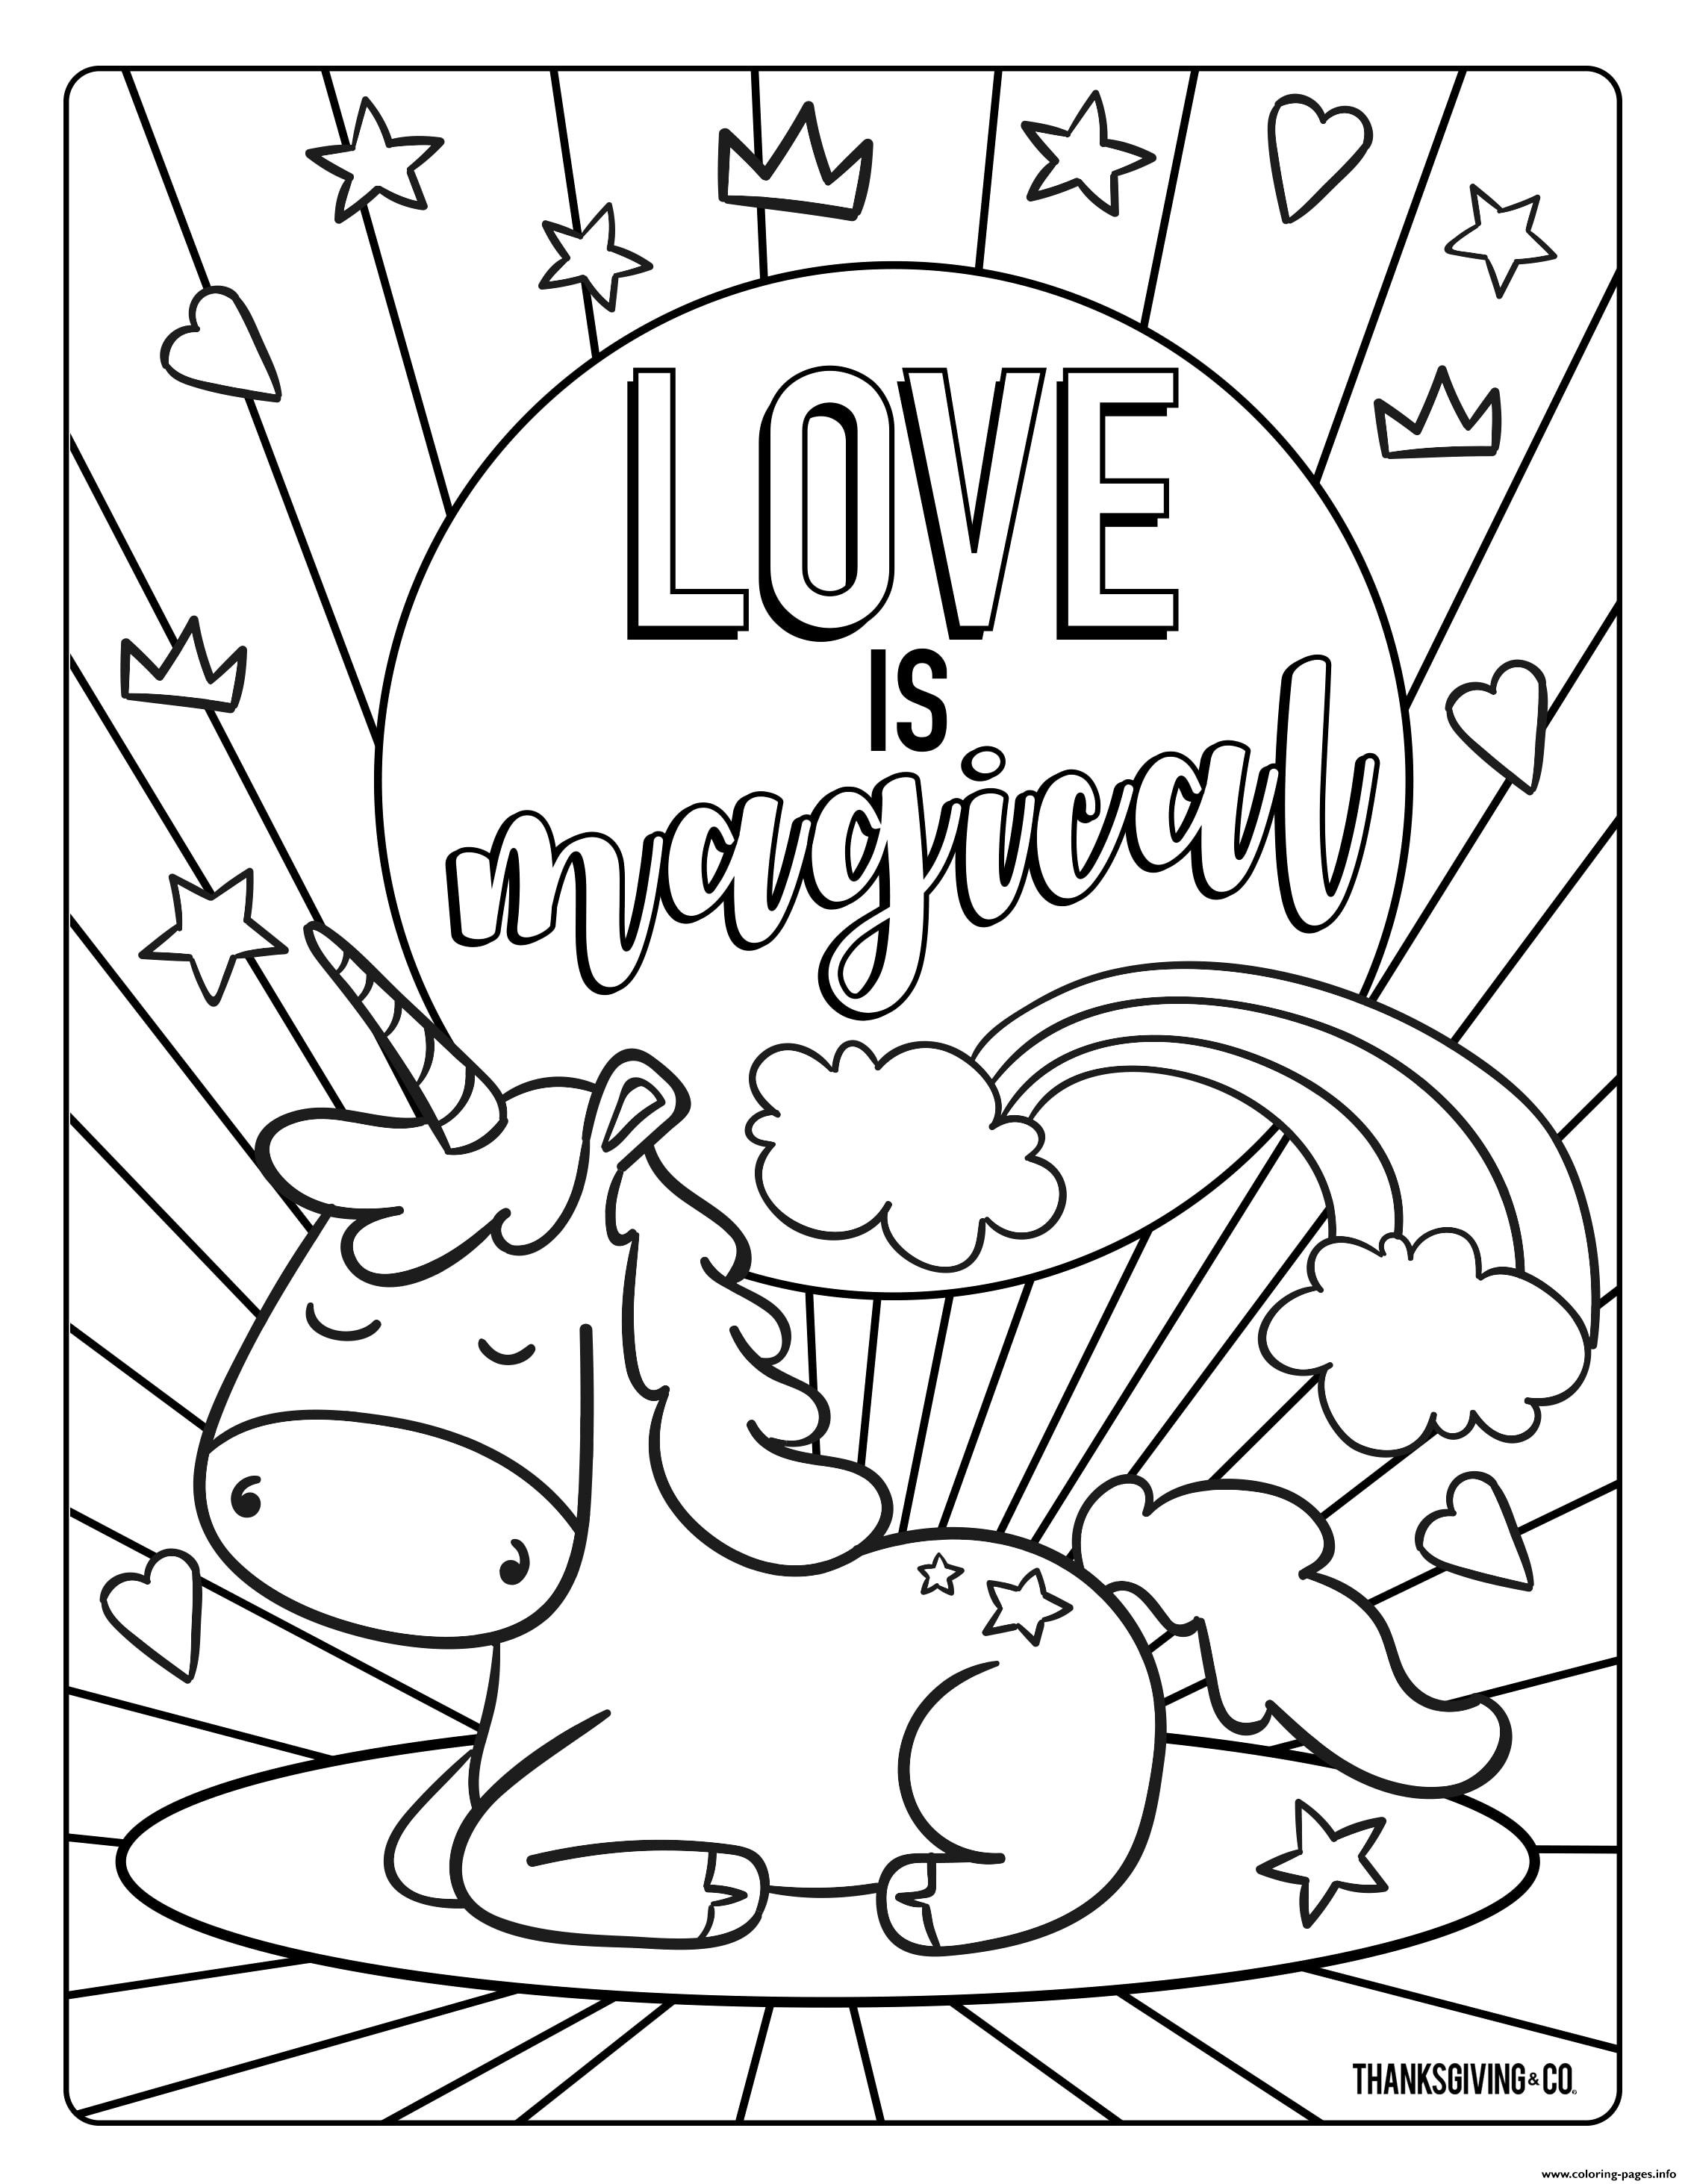 40+ Valentine's Day Coloring Pages PDF Printables | 2926x2261